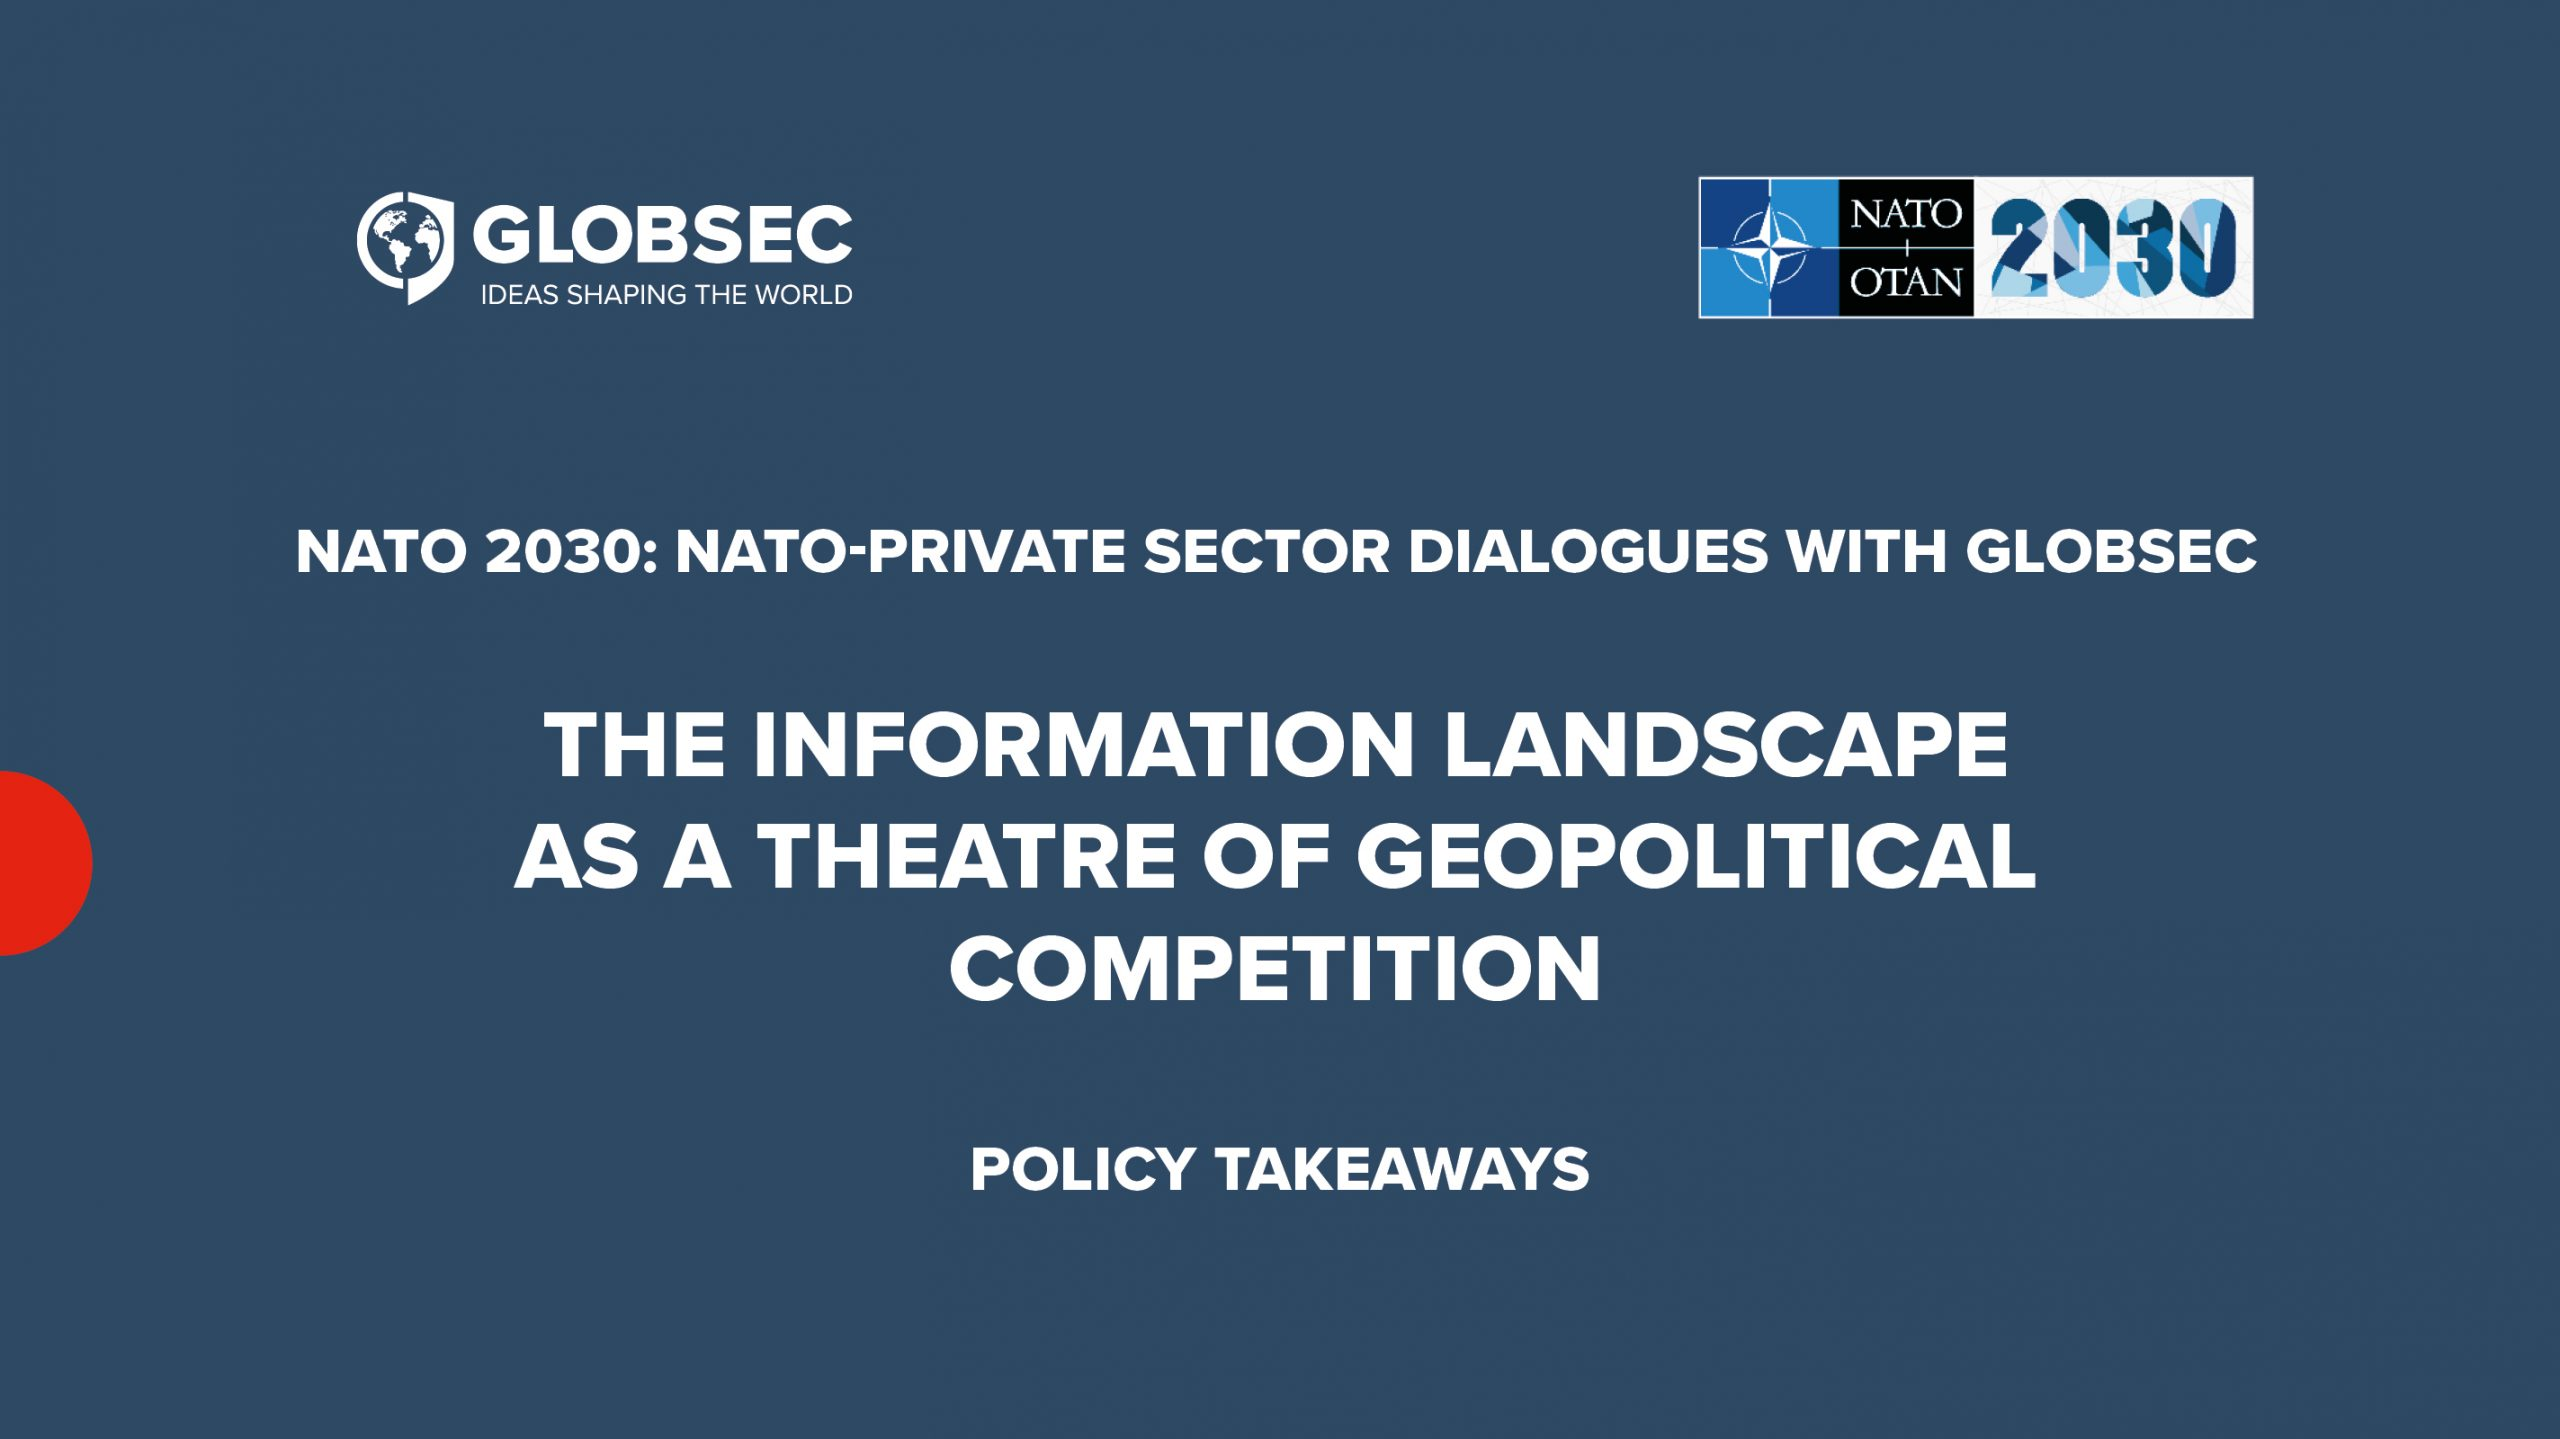 The Information Landscape as a Theatre of Geopolitical Competition: Recap